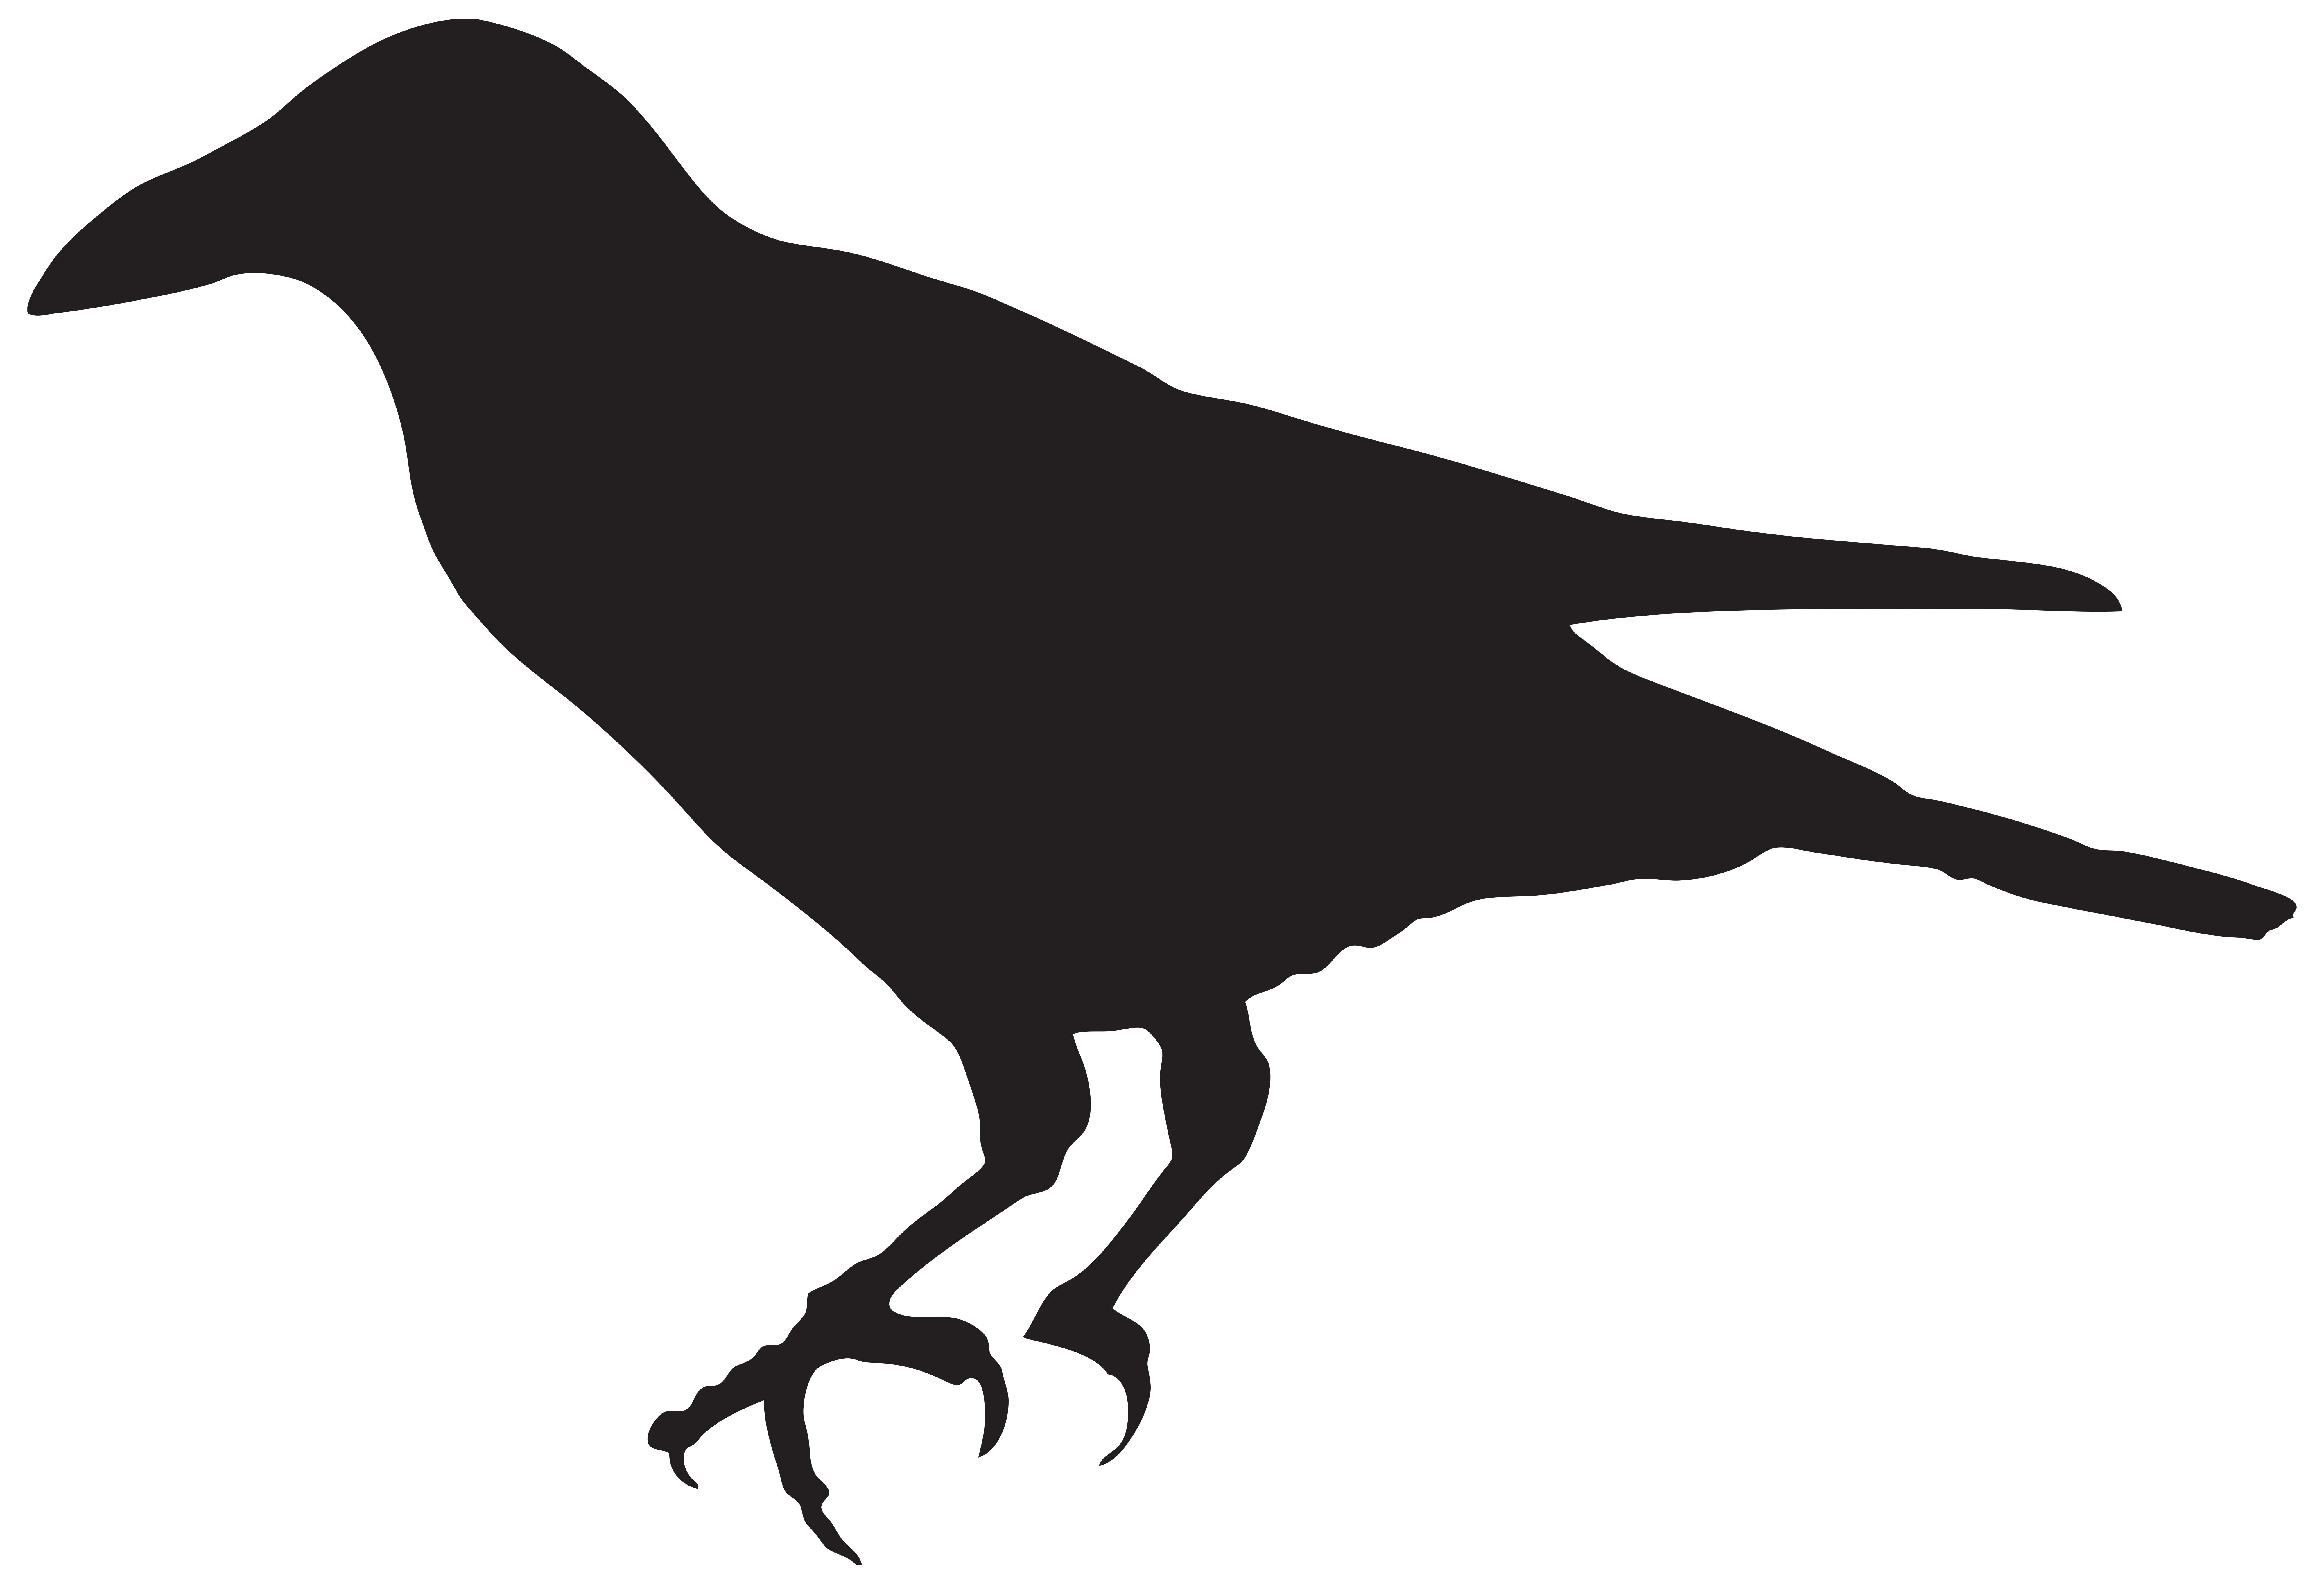 Halloween clipart crow clipart library stock Crow Silhouette at GetDrawings.com | Free for personal use Crow ... clipart library stock